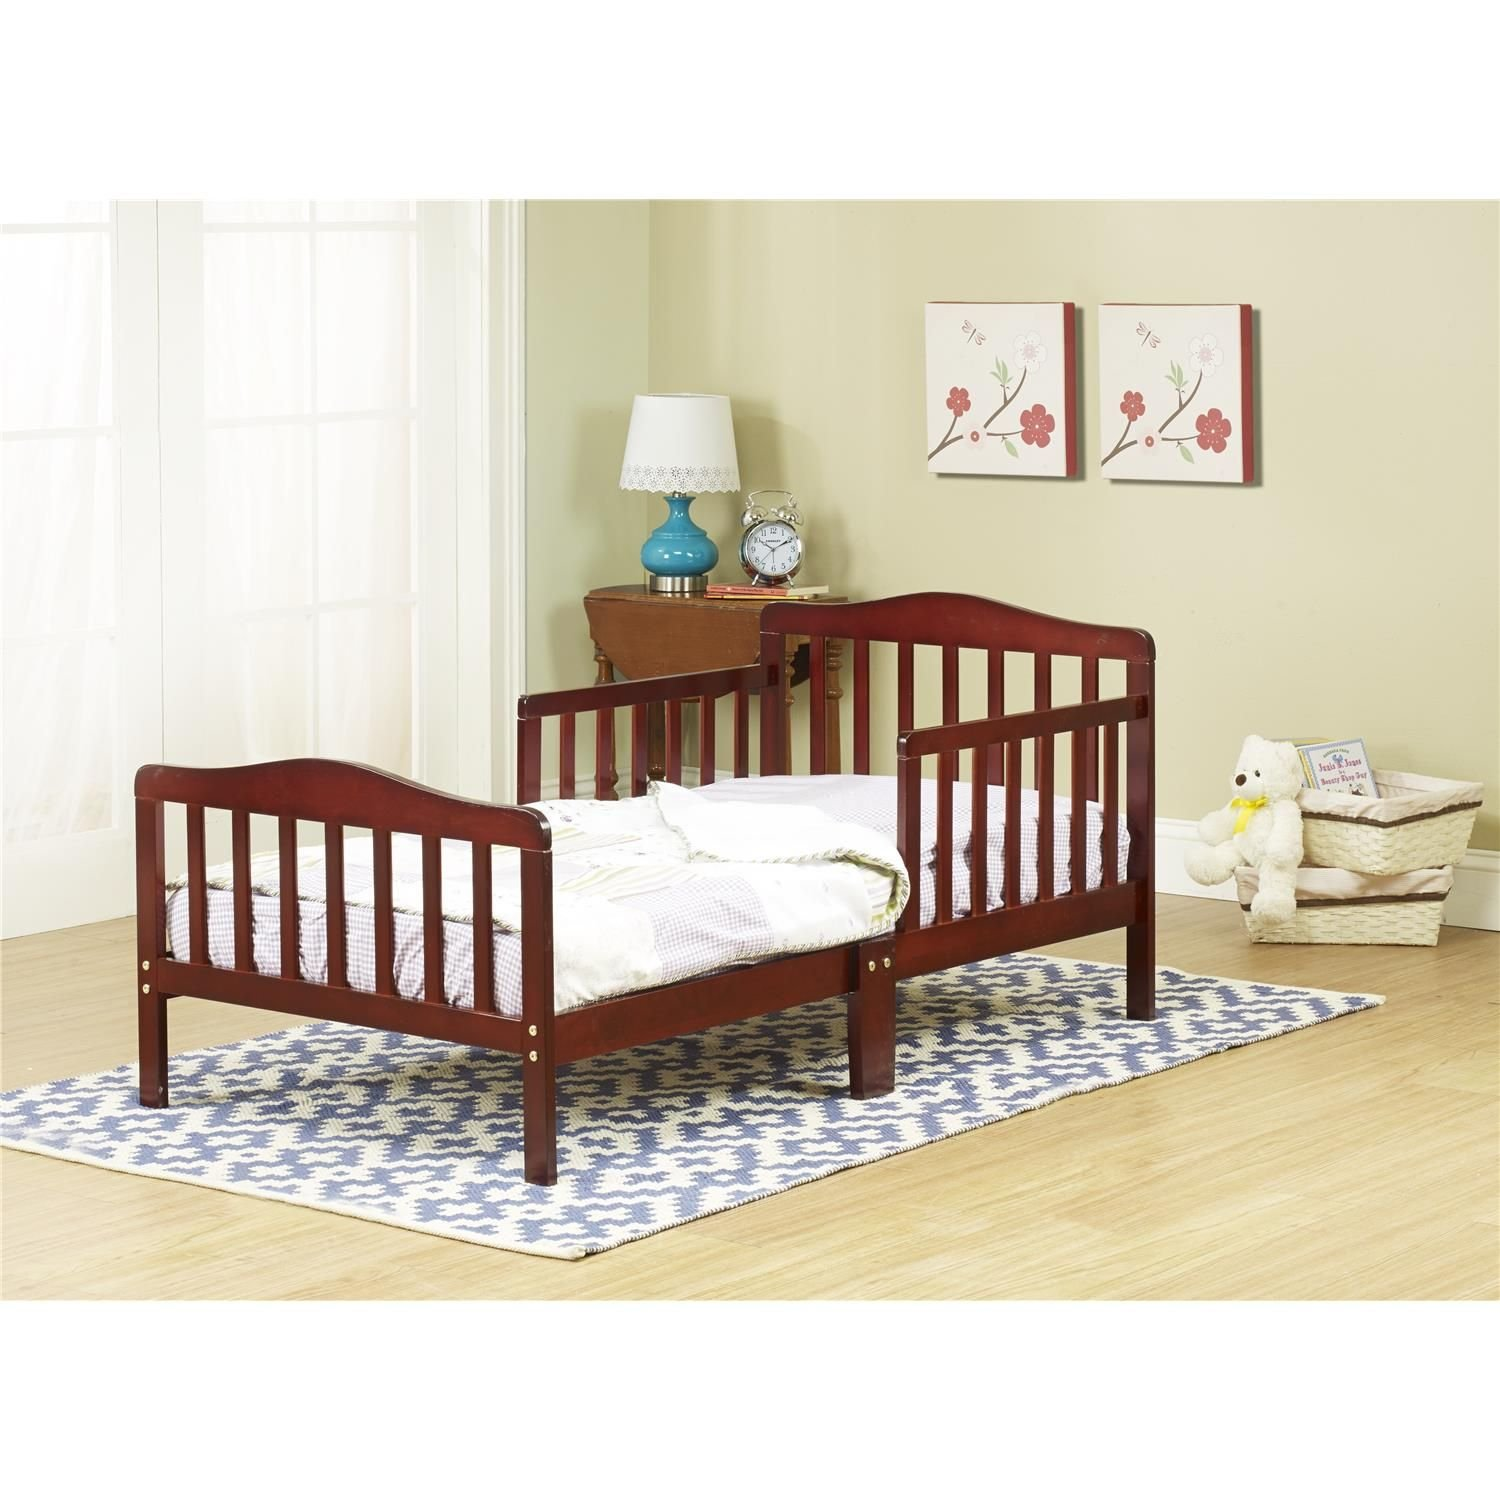 Orbelle 3-6T Toddler Bed, Dark Cherry